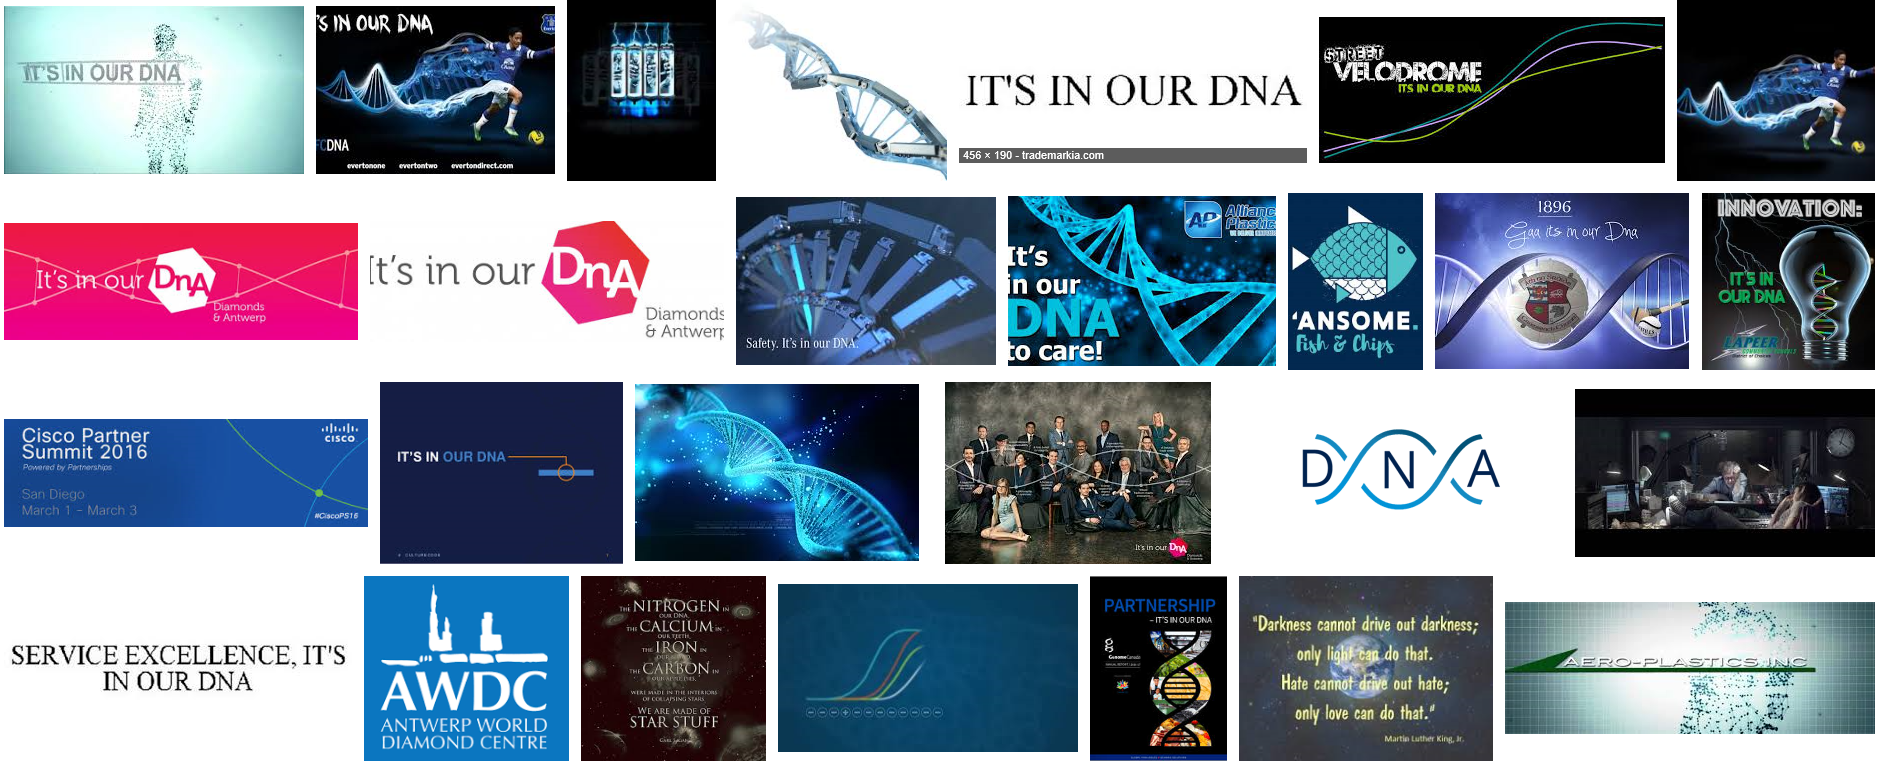 Imputation dnaexplained genetic genealogy i saw dna in ads that year for the first time not related to dna testing or health as in its in our dna solutioingenieria Choice Image